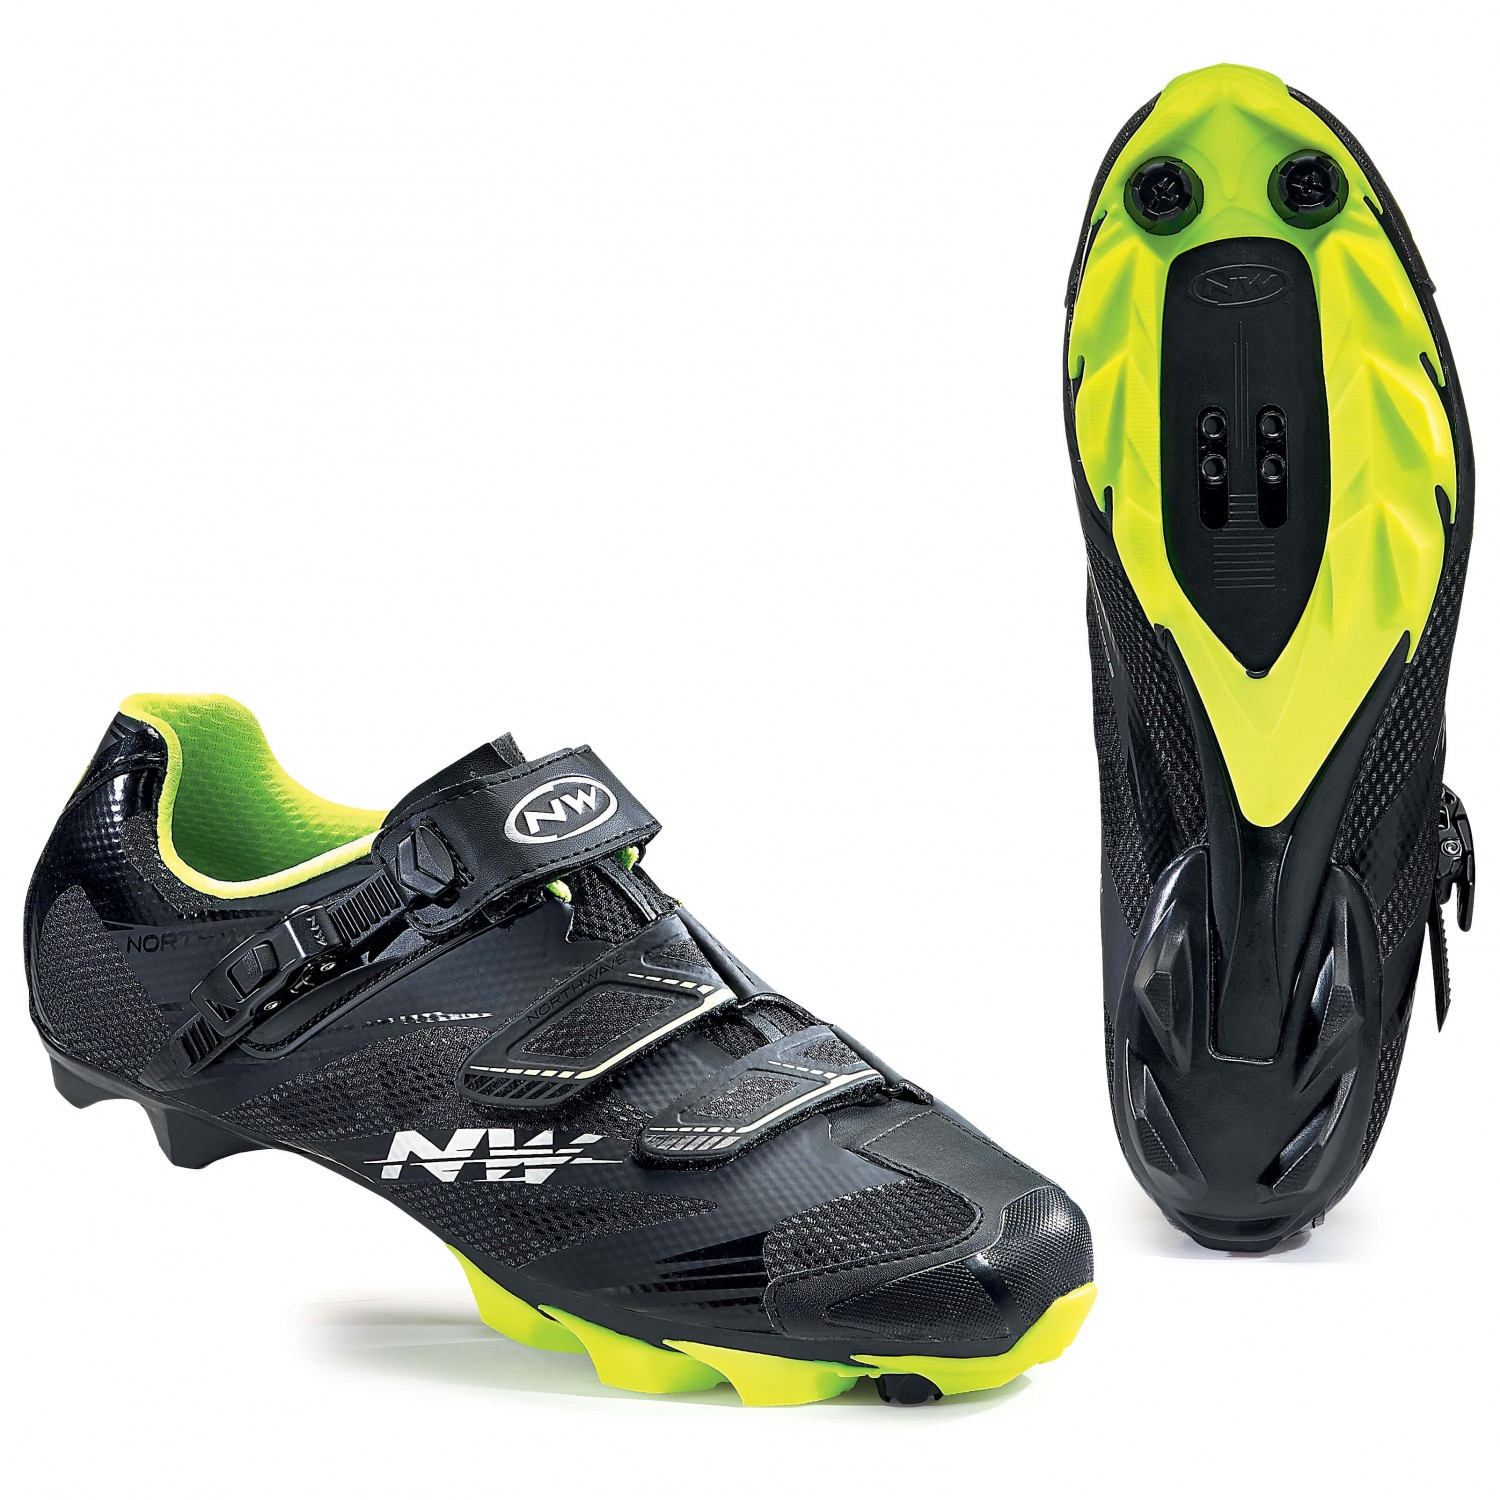 aeb9eed429b Northwave Scorpius 2 SRS - Cycling shoes Men's | Buy online ...